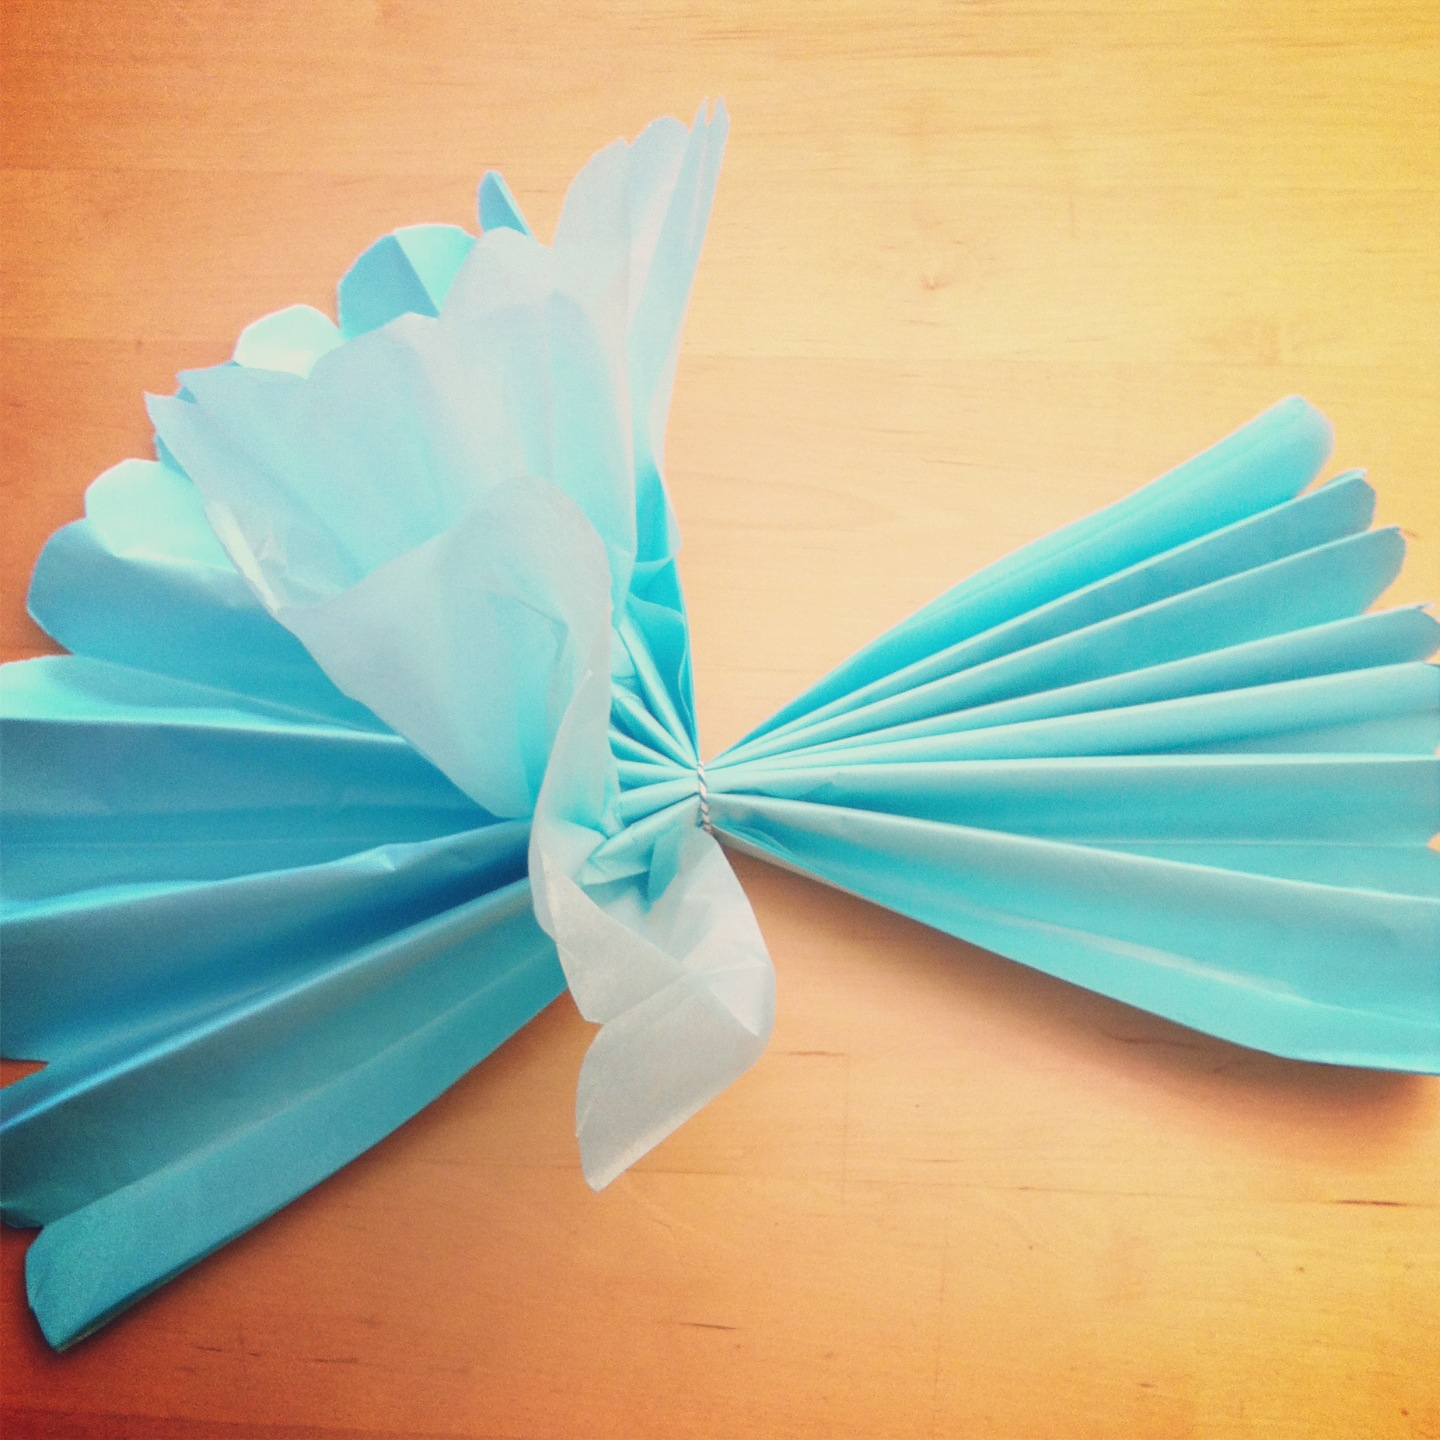 diy tissue paper flowers Happy tuesday everyone i have another diy post for you all from nicole of  fashionably wed this time around it's diy tissue paper flowers-.